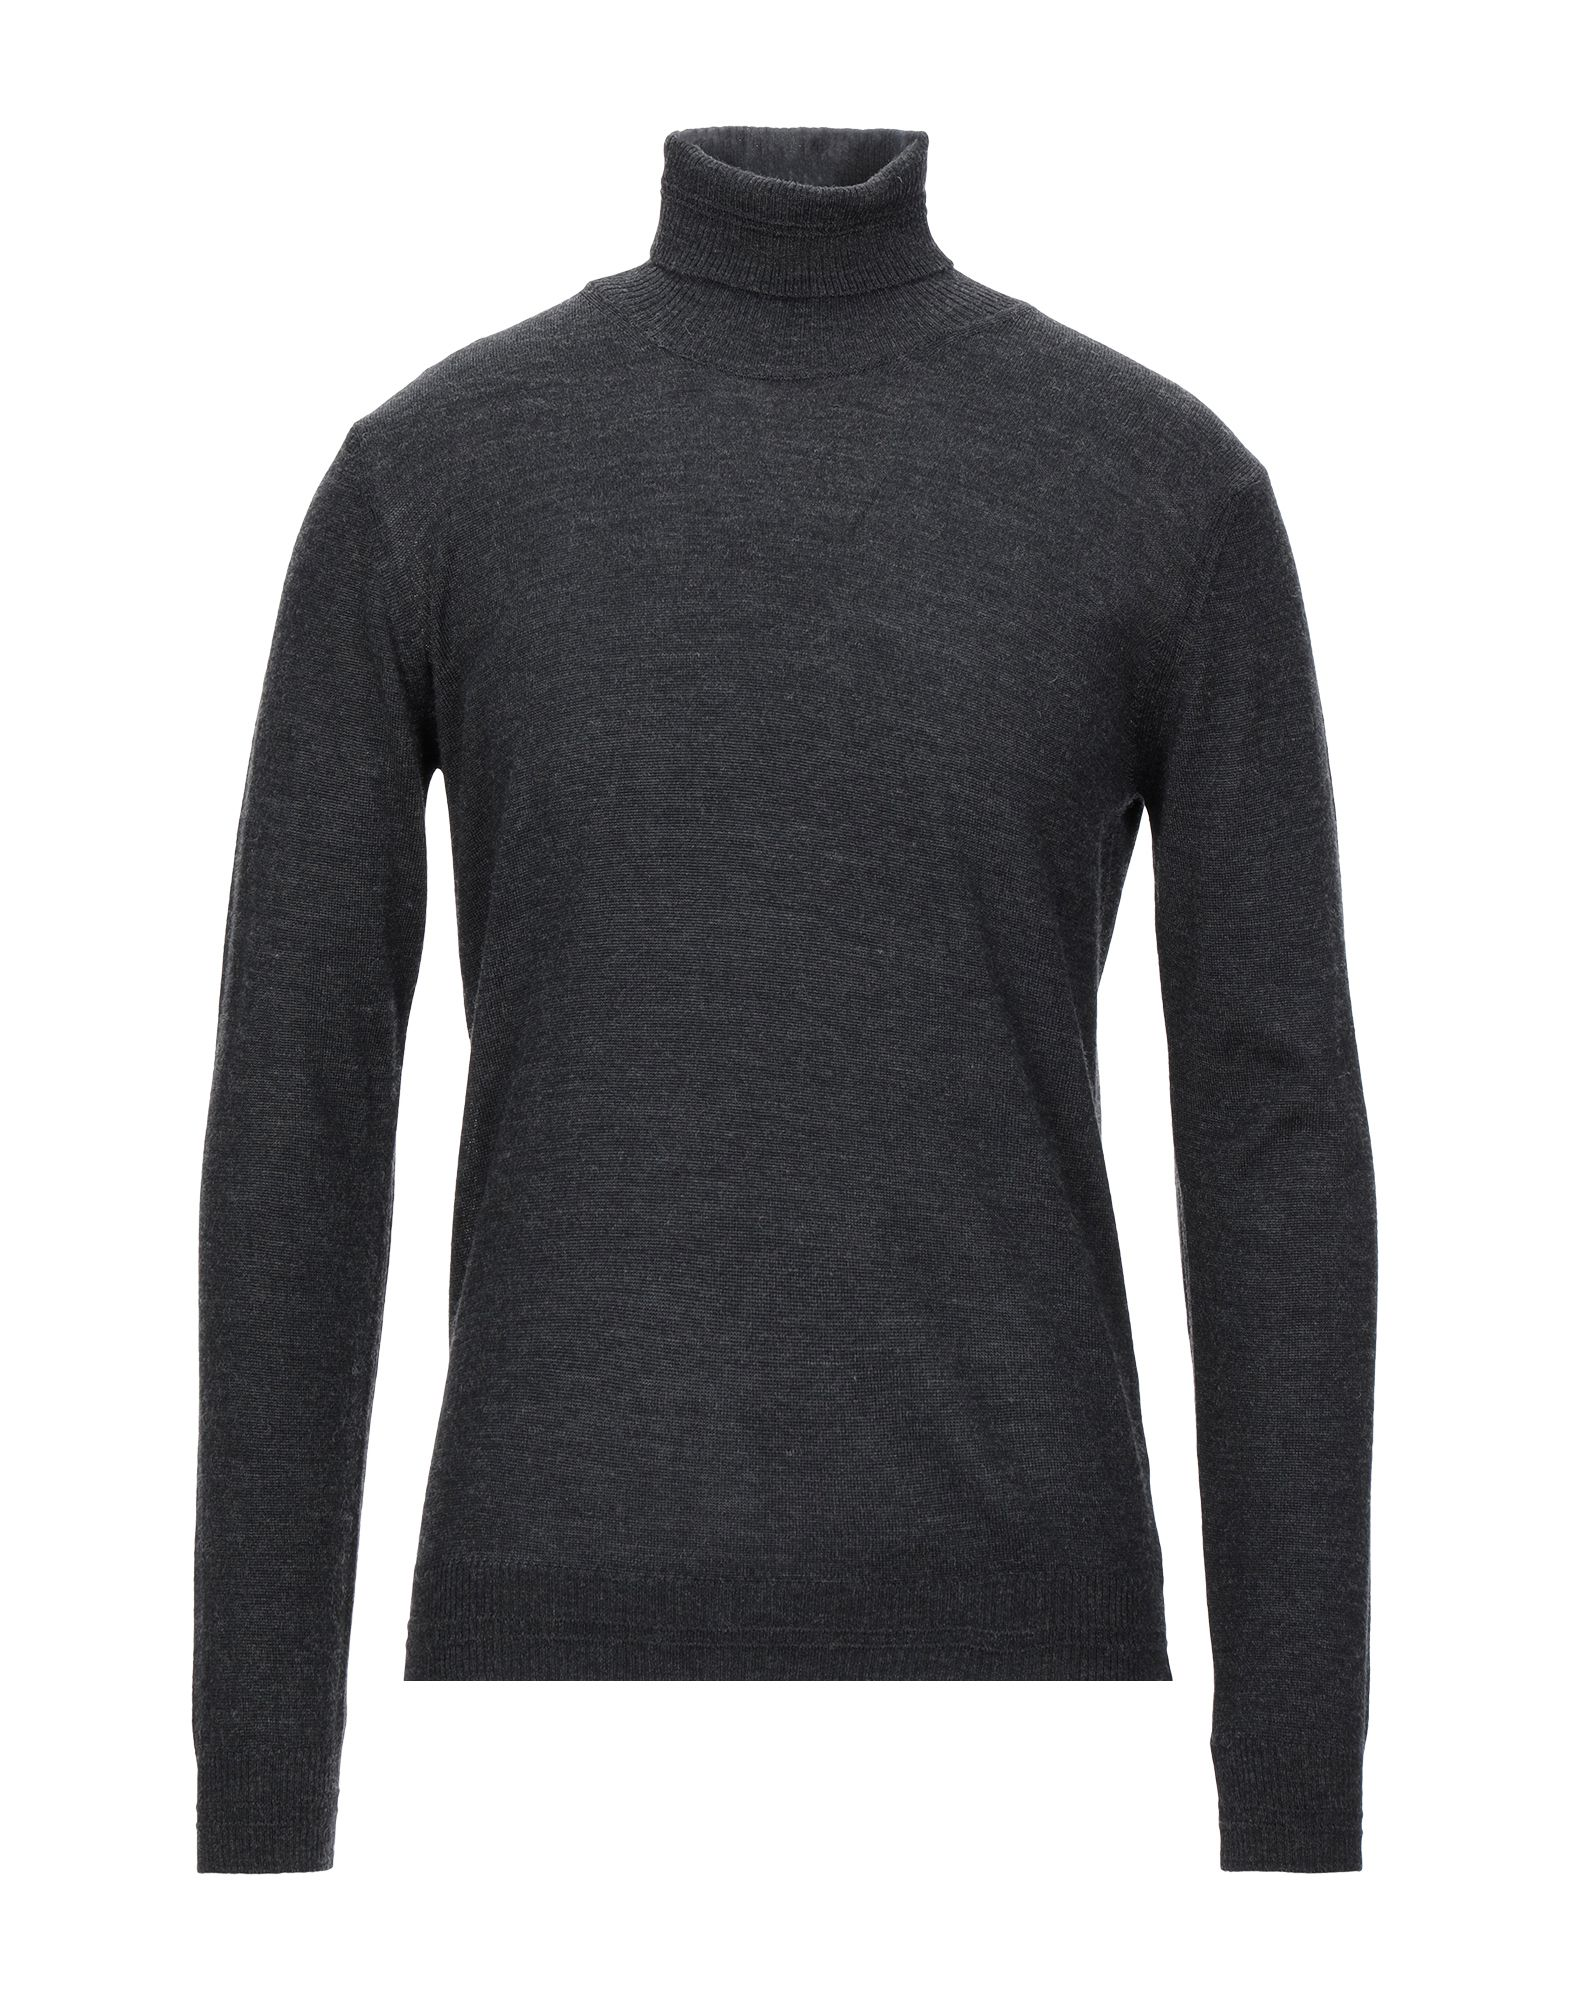 OFFICINA 36 Turtlenecks - Item 14051094